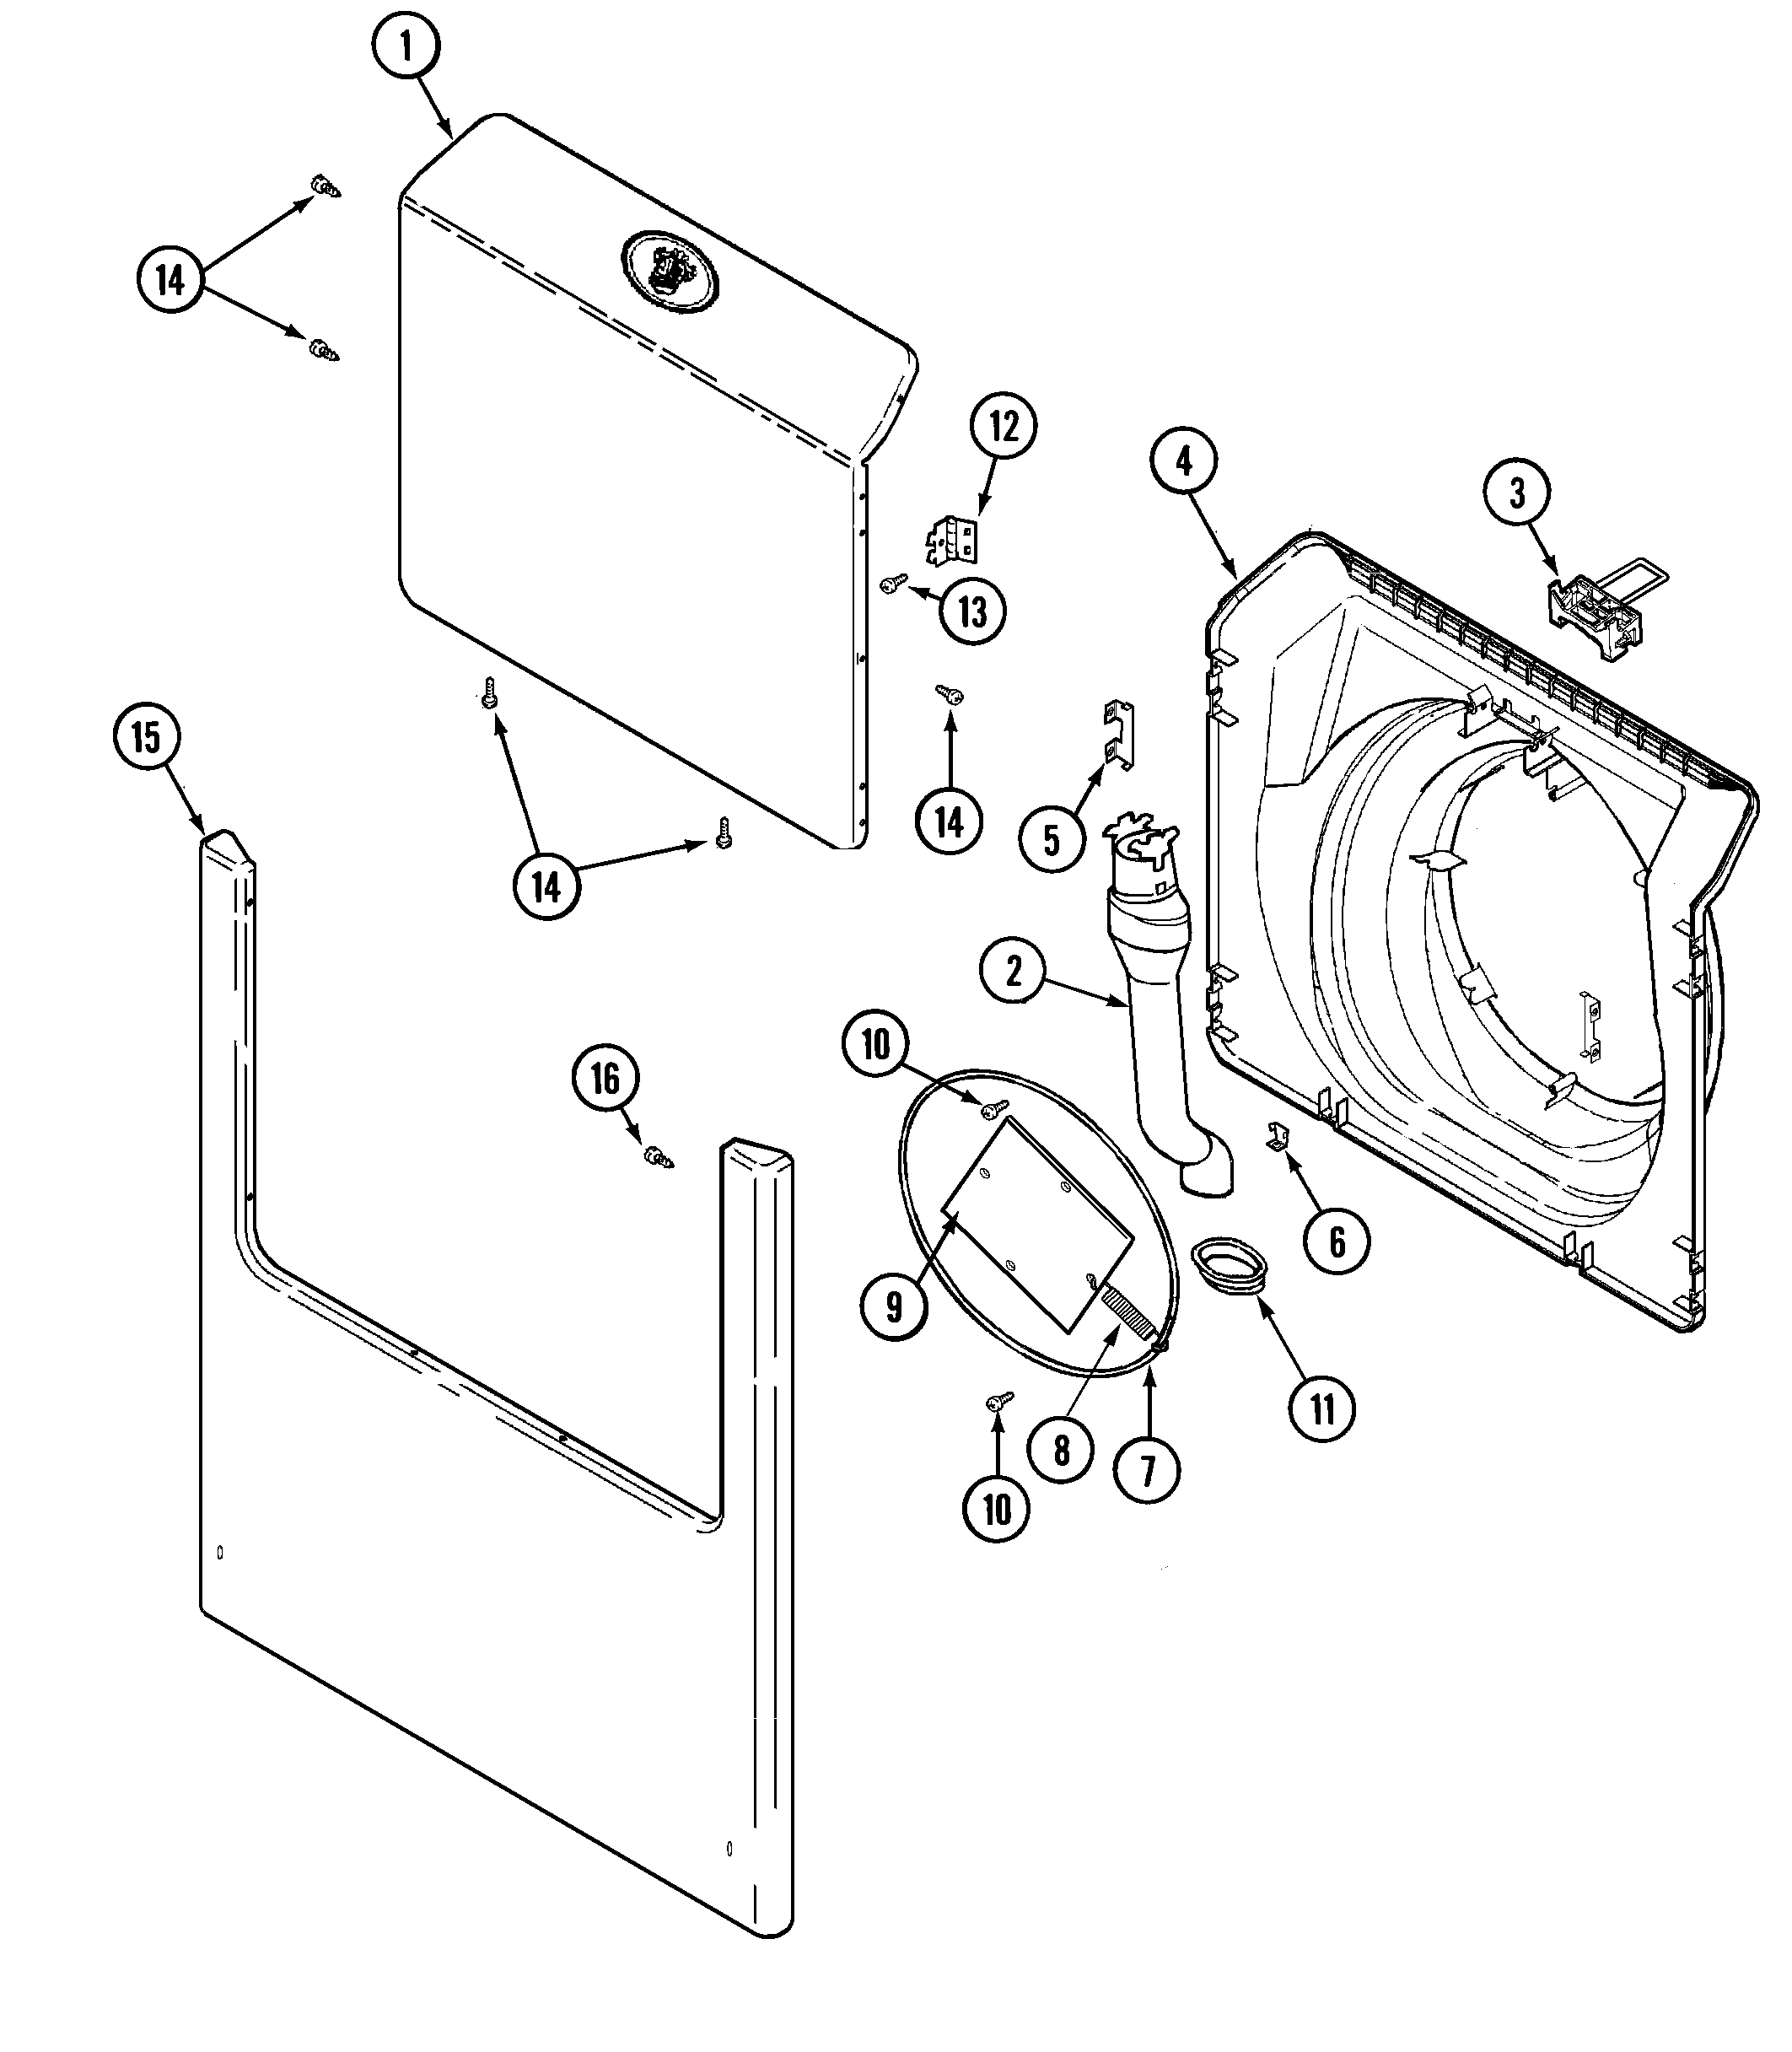 hight resolution of wiring for maytag dryer moreover my maytag performa med5740tq0 dryer neptune washer diagram furthermore maytag dryer parts diagram